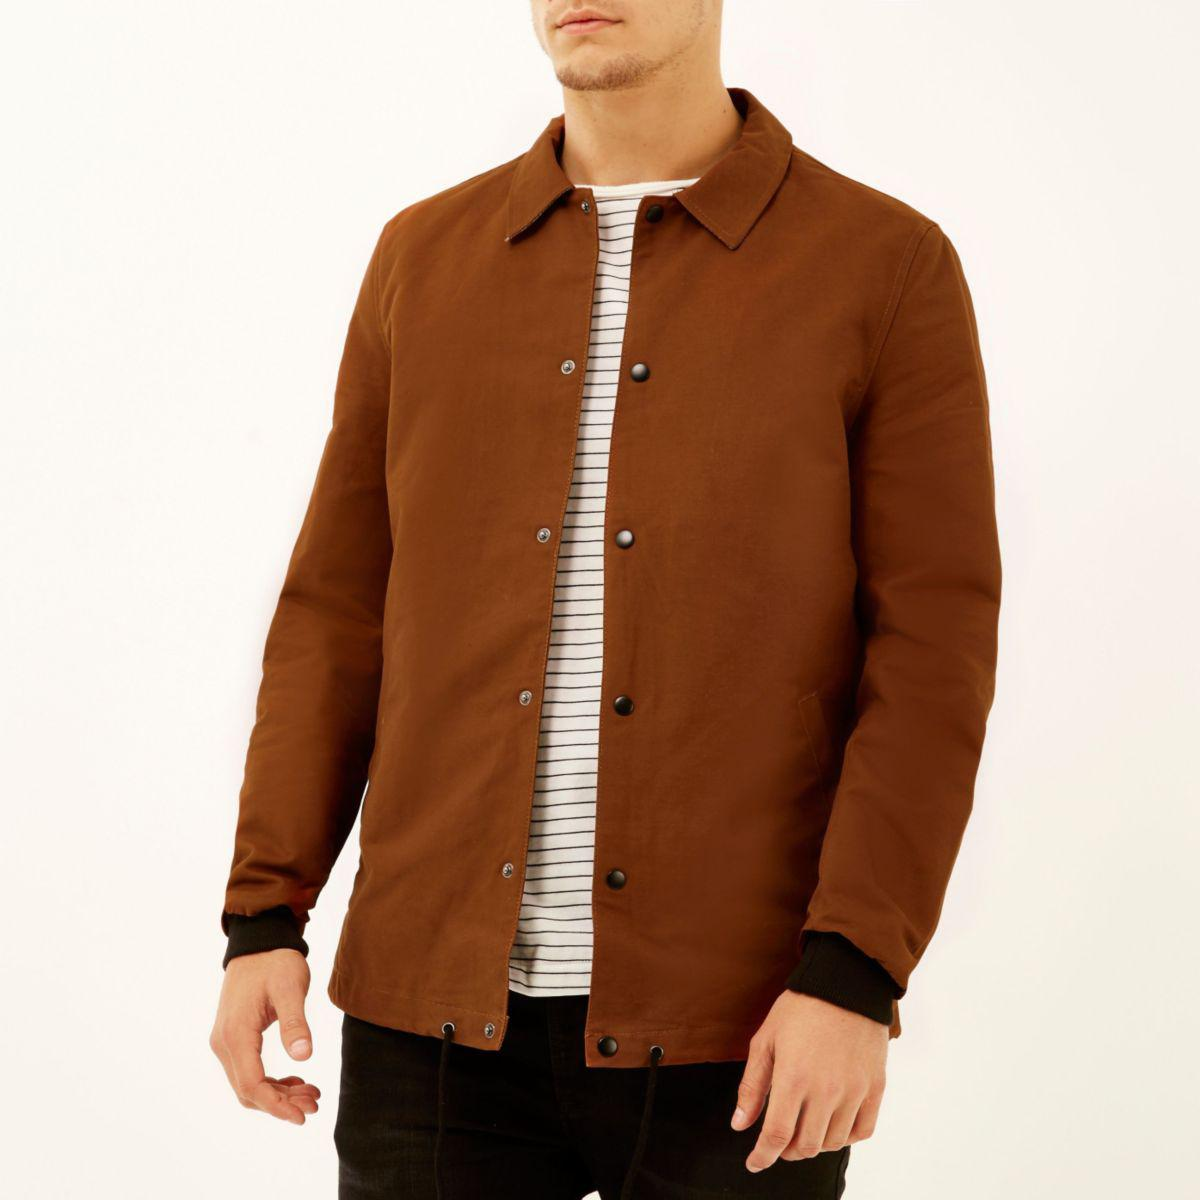 Lyst - River island Rust Brown Casual Coach Jacket in Brown for Men